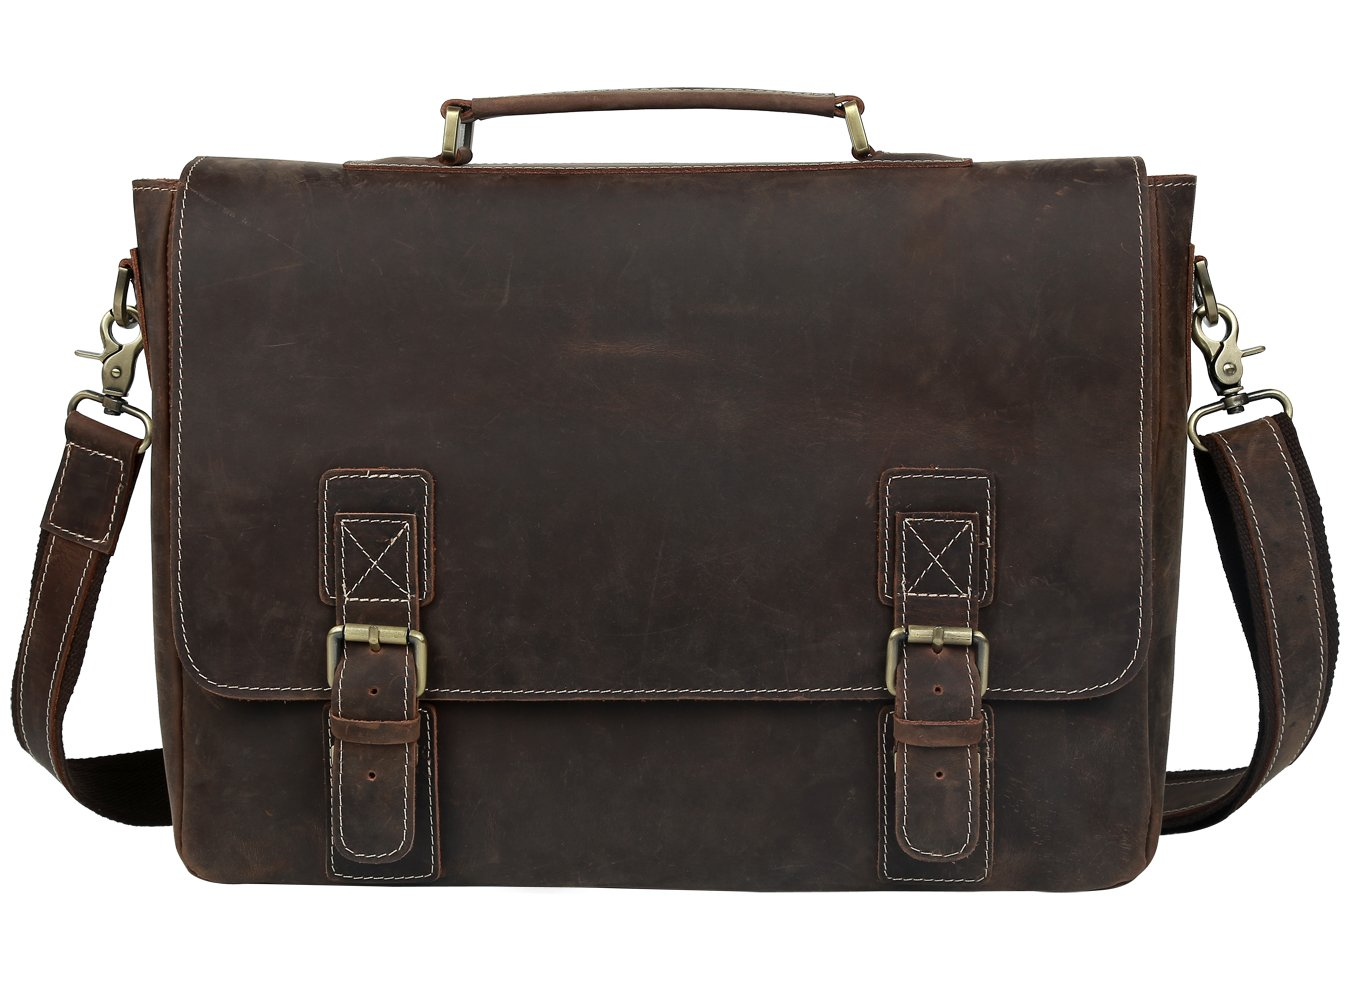 BAIGIO Laptop Messenger Shoulder Bag Tote for Men Real Leather Satchel Briefcase up to 16 Inch, Dark Brown 540910